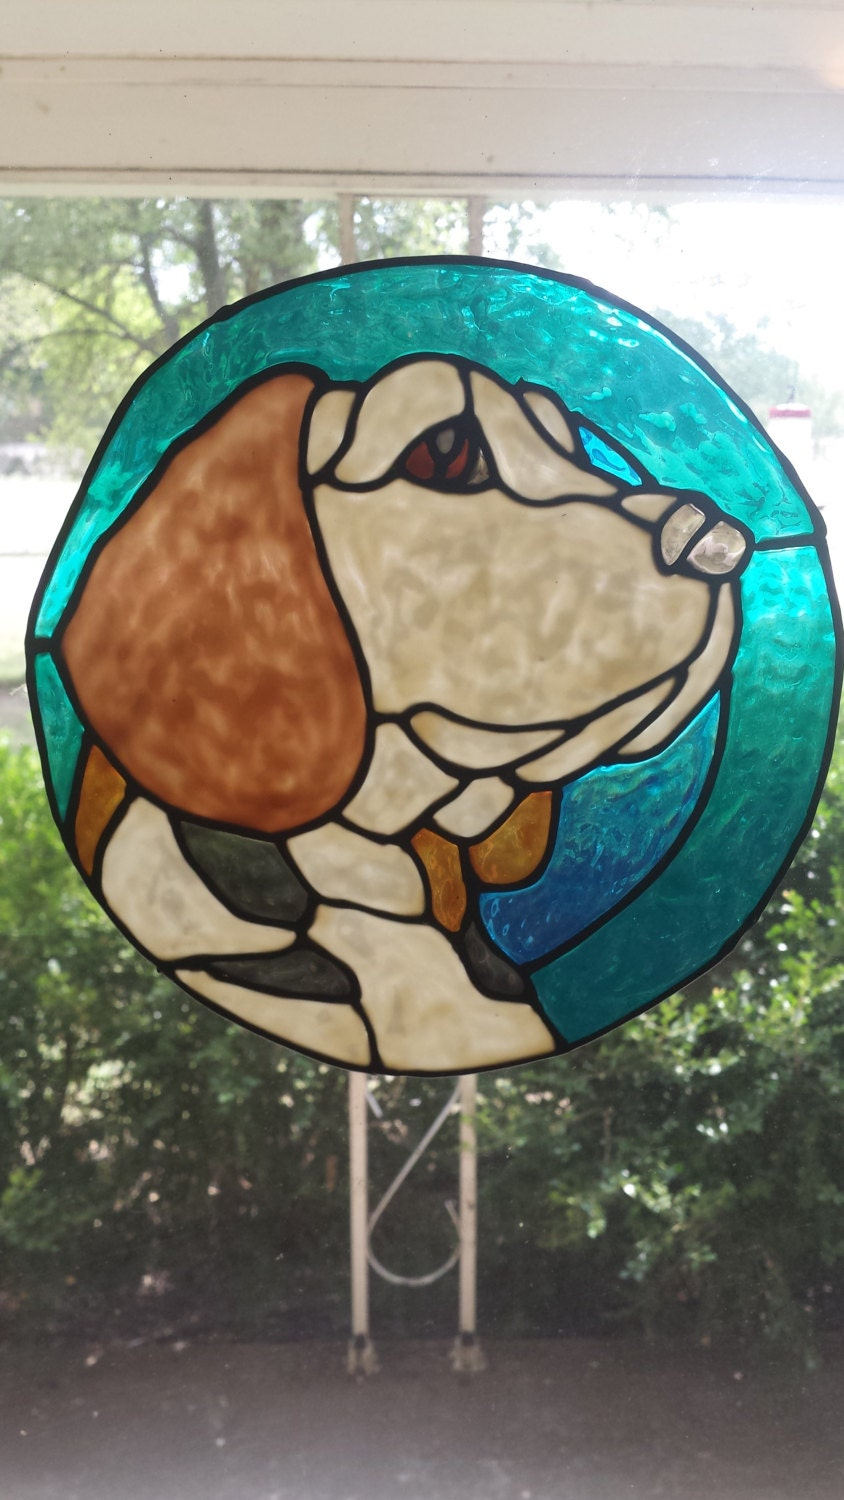 Beagle Dog Stained Glass Window Cling 8 X 8 Inches